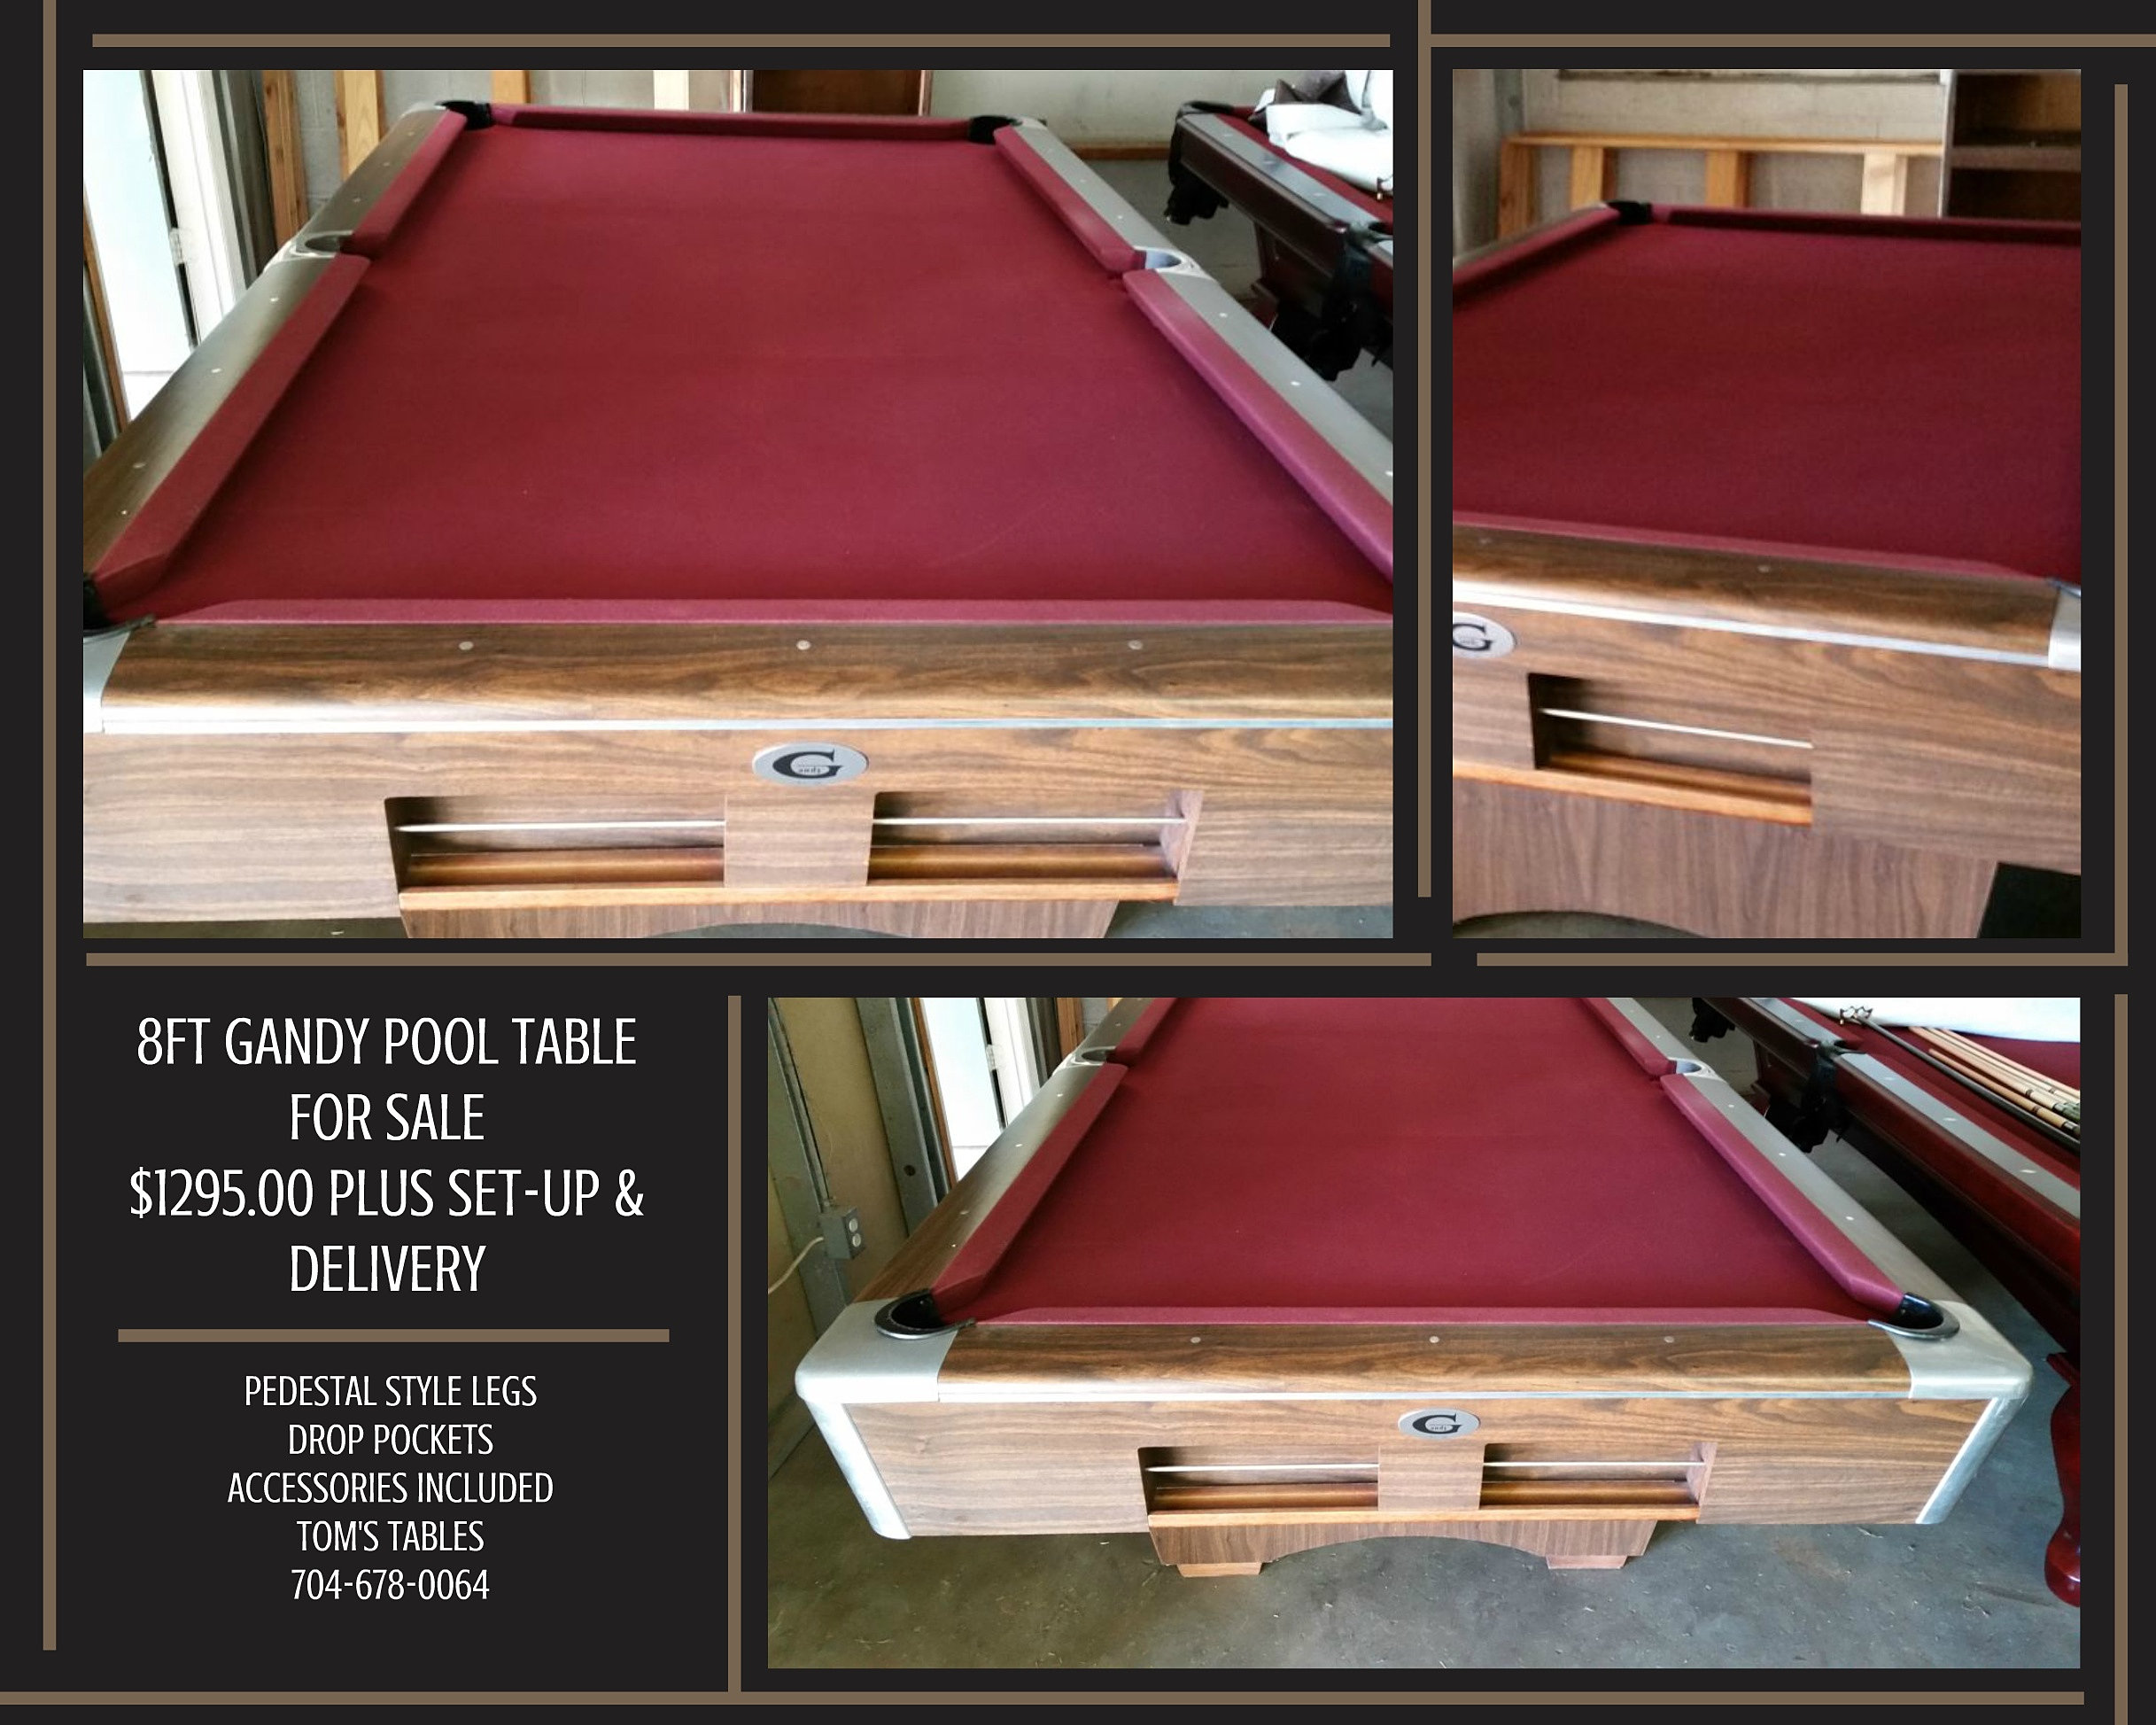 Pool table legs accessories for sale - Just In 8ft Gandy Pool Table For Sale Burgundy Cloth Drop Pockets Pedalstal Style Legs Accessories